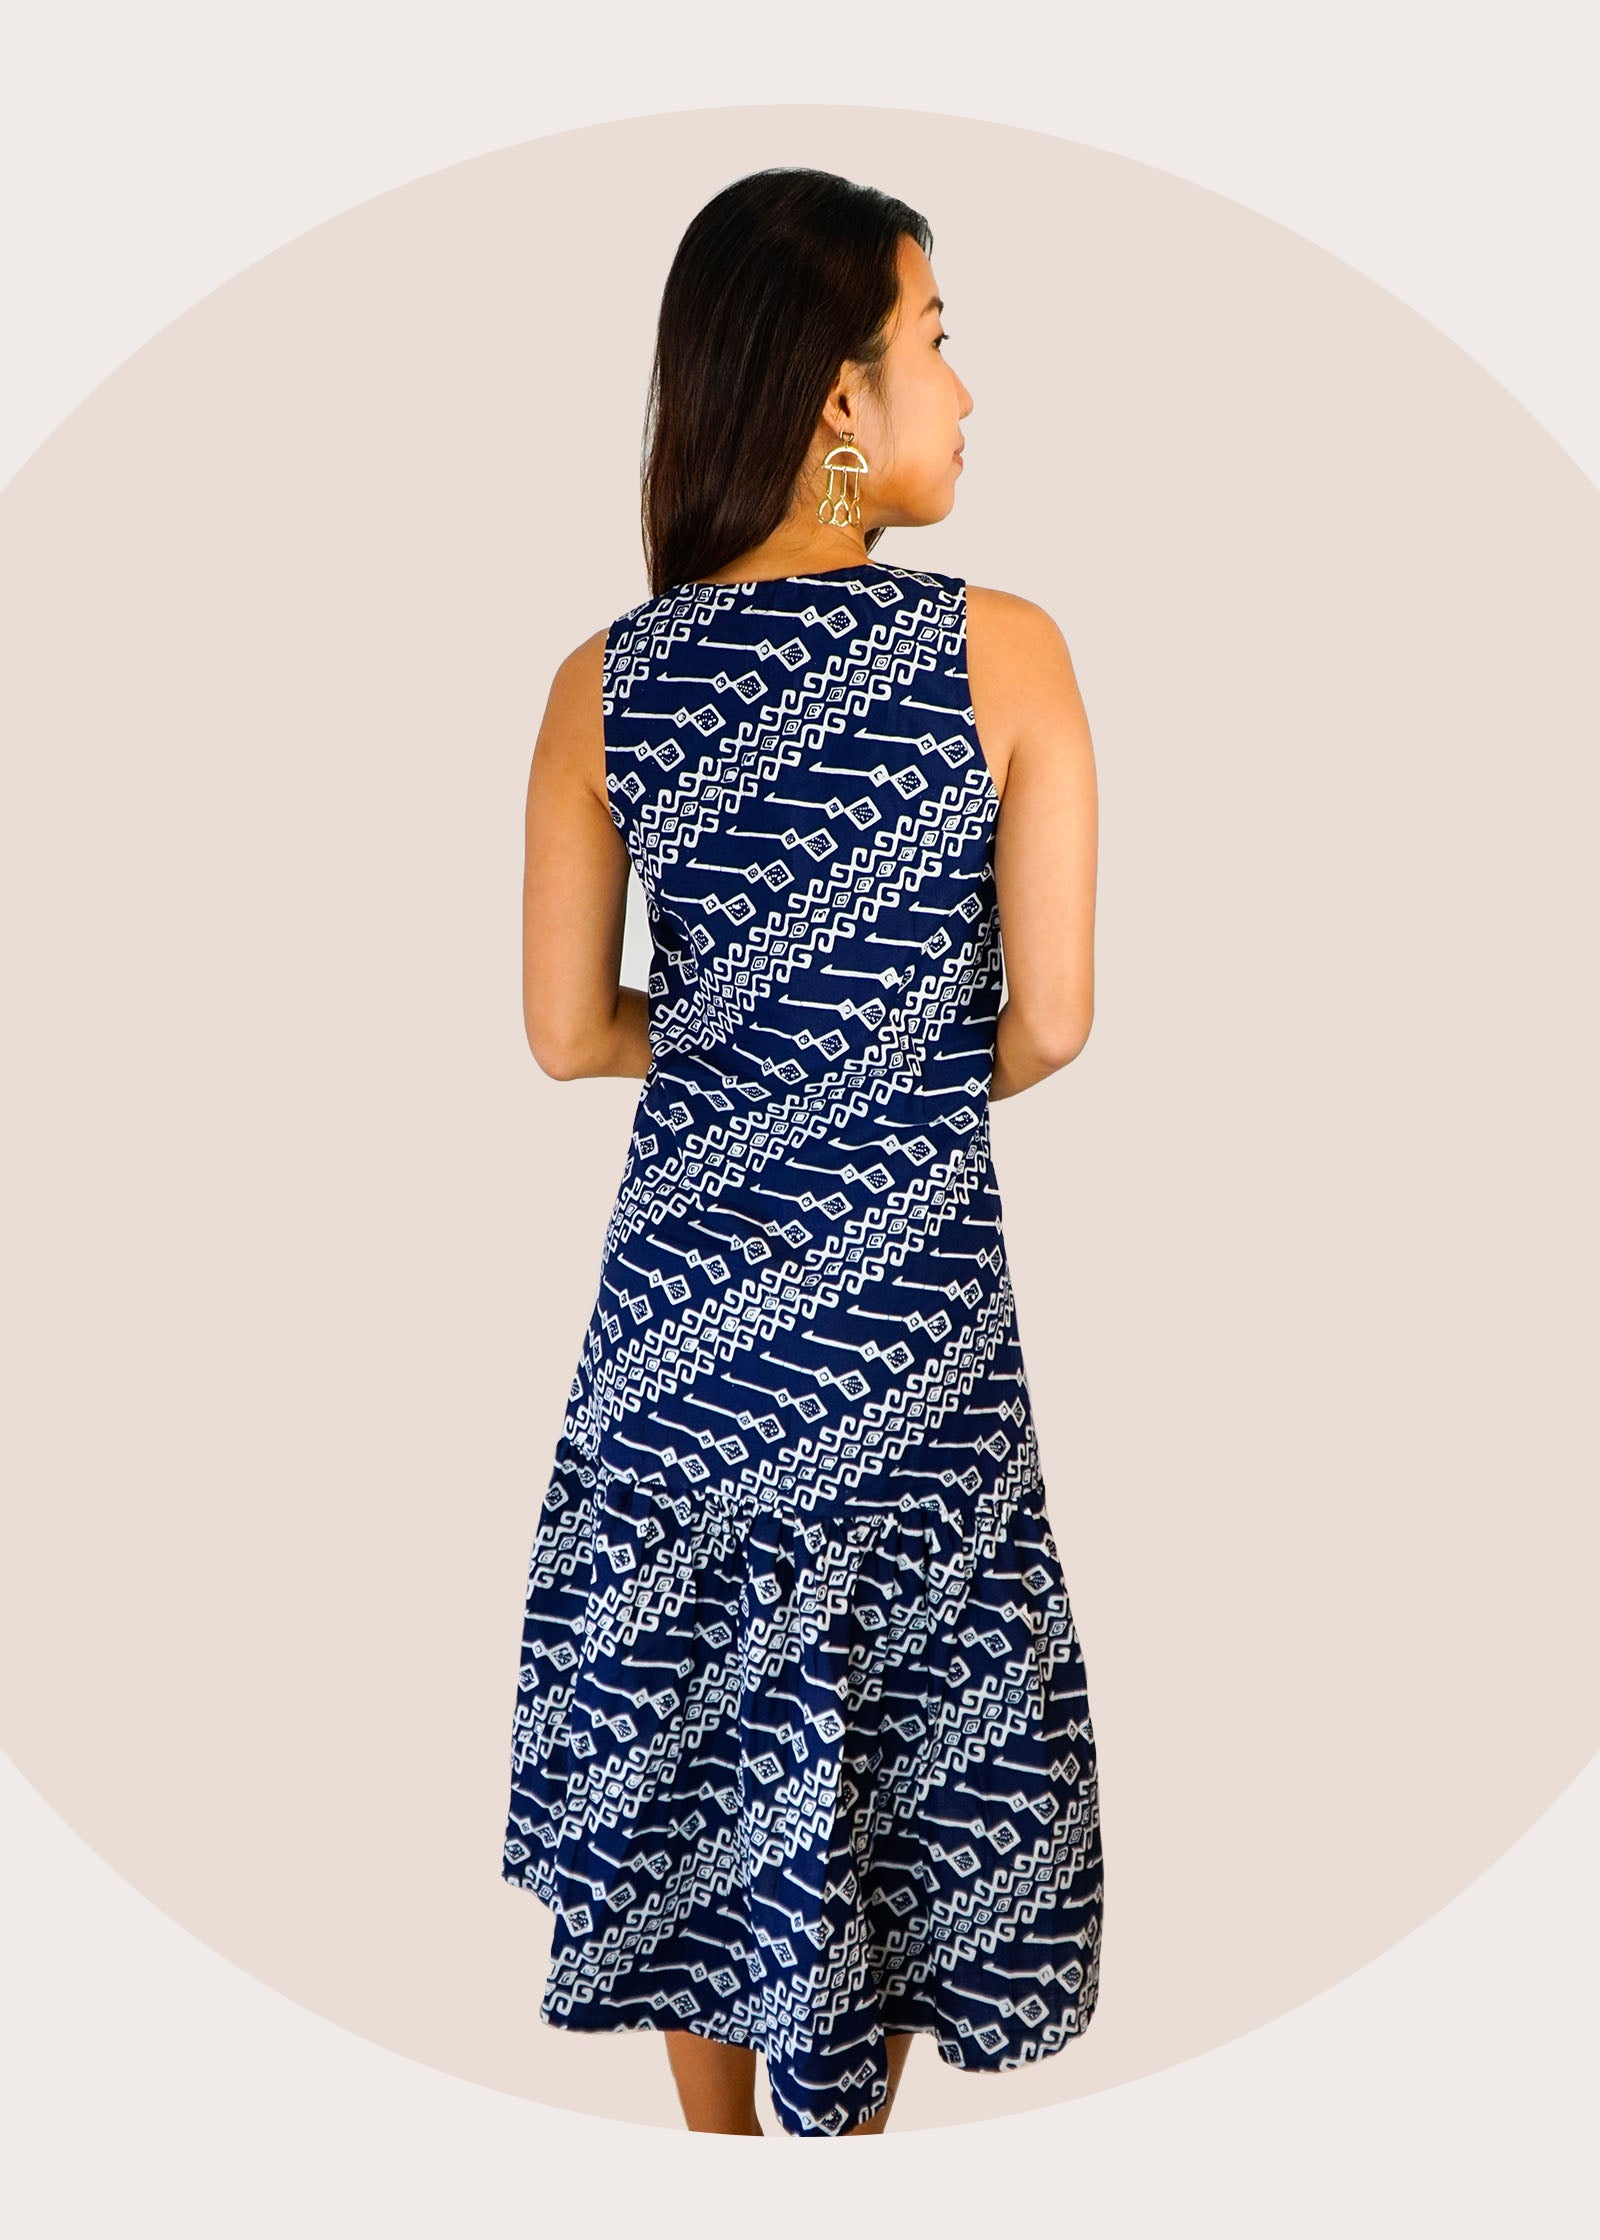 Cindy Ruffle Batik Dress in Navy